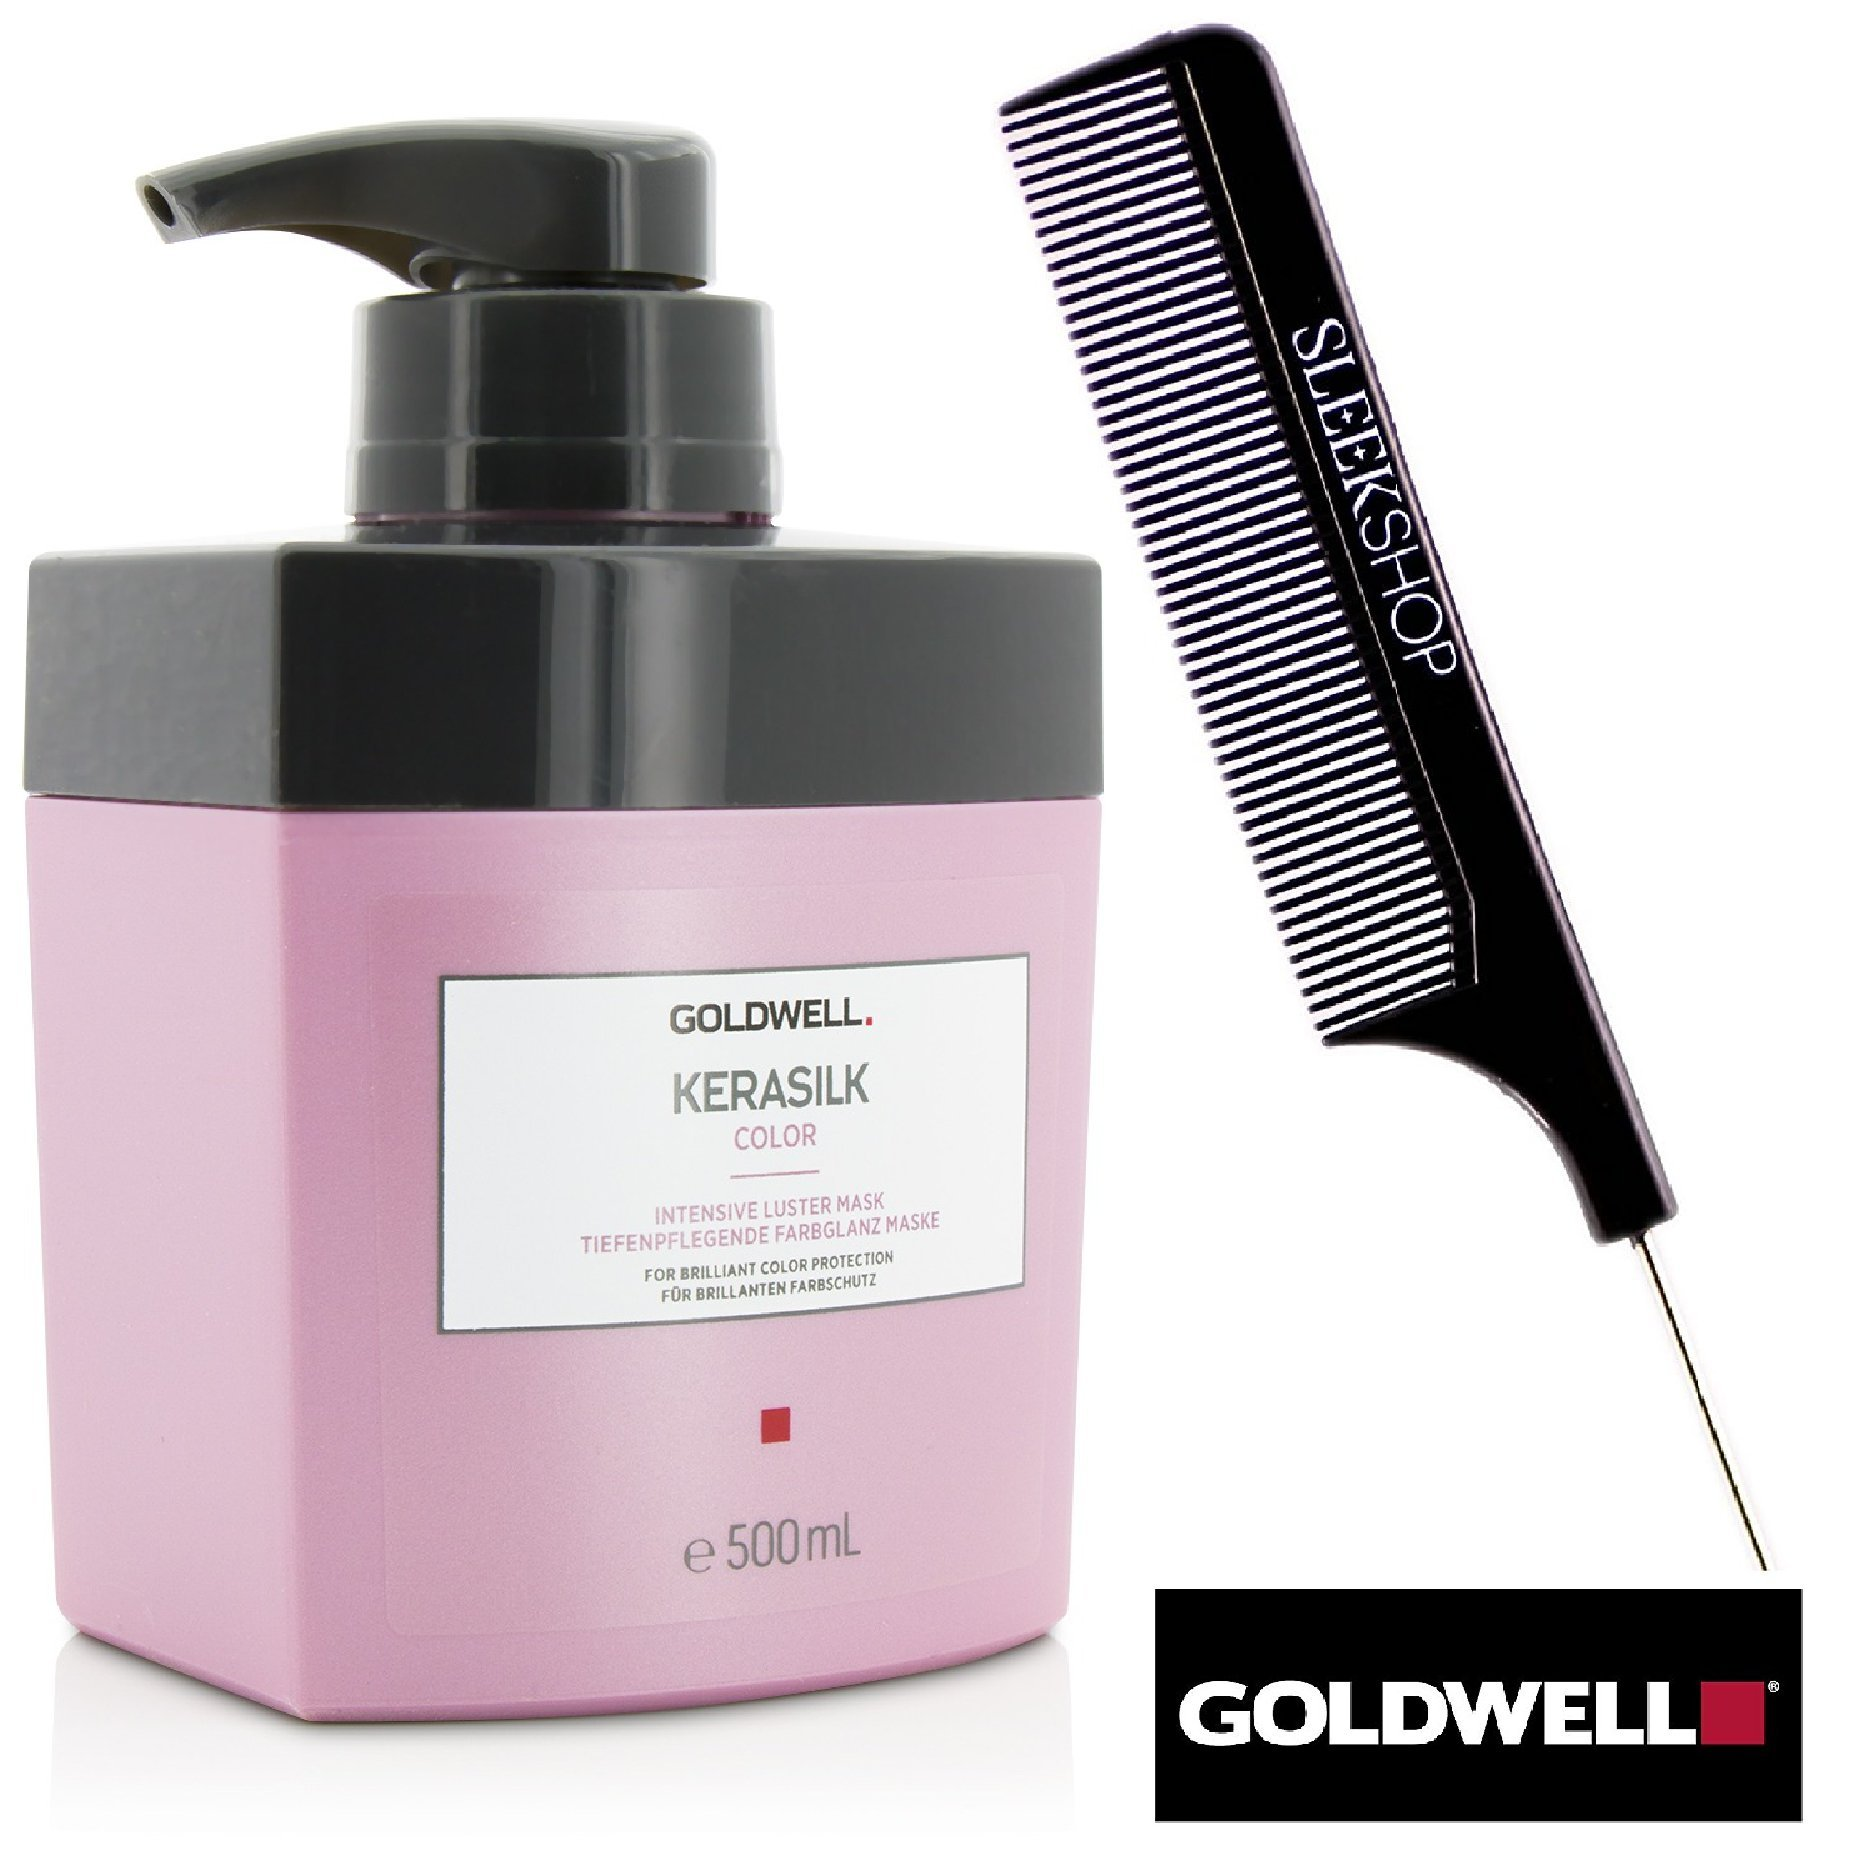 Goldwell Kerasilk COLOR Intensive Luster Mask for brilliant color protection (with Sleek Steel Pin Tail Comb) (16.9 oz / 500 ml PRO SIZE)